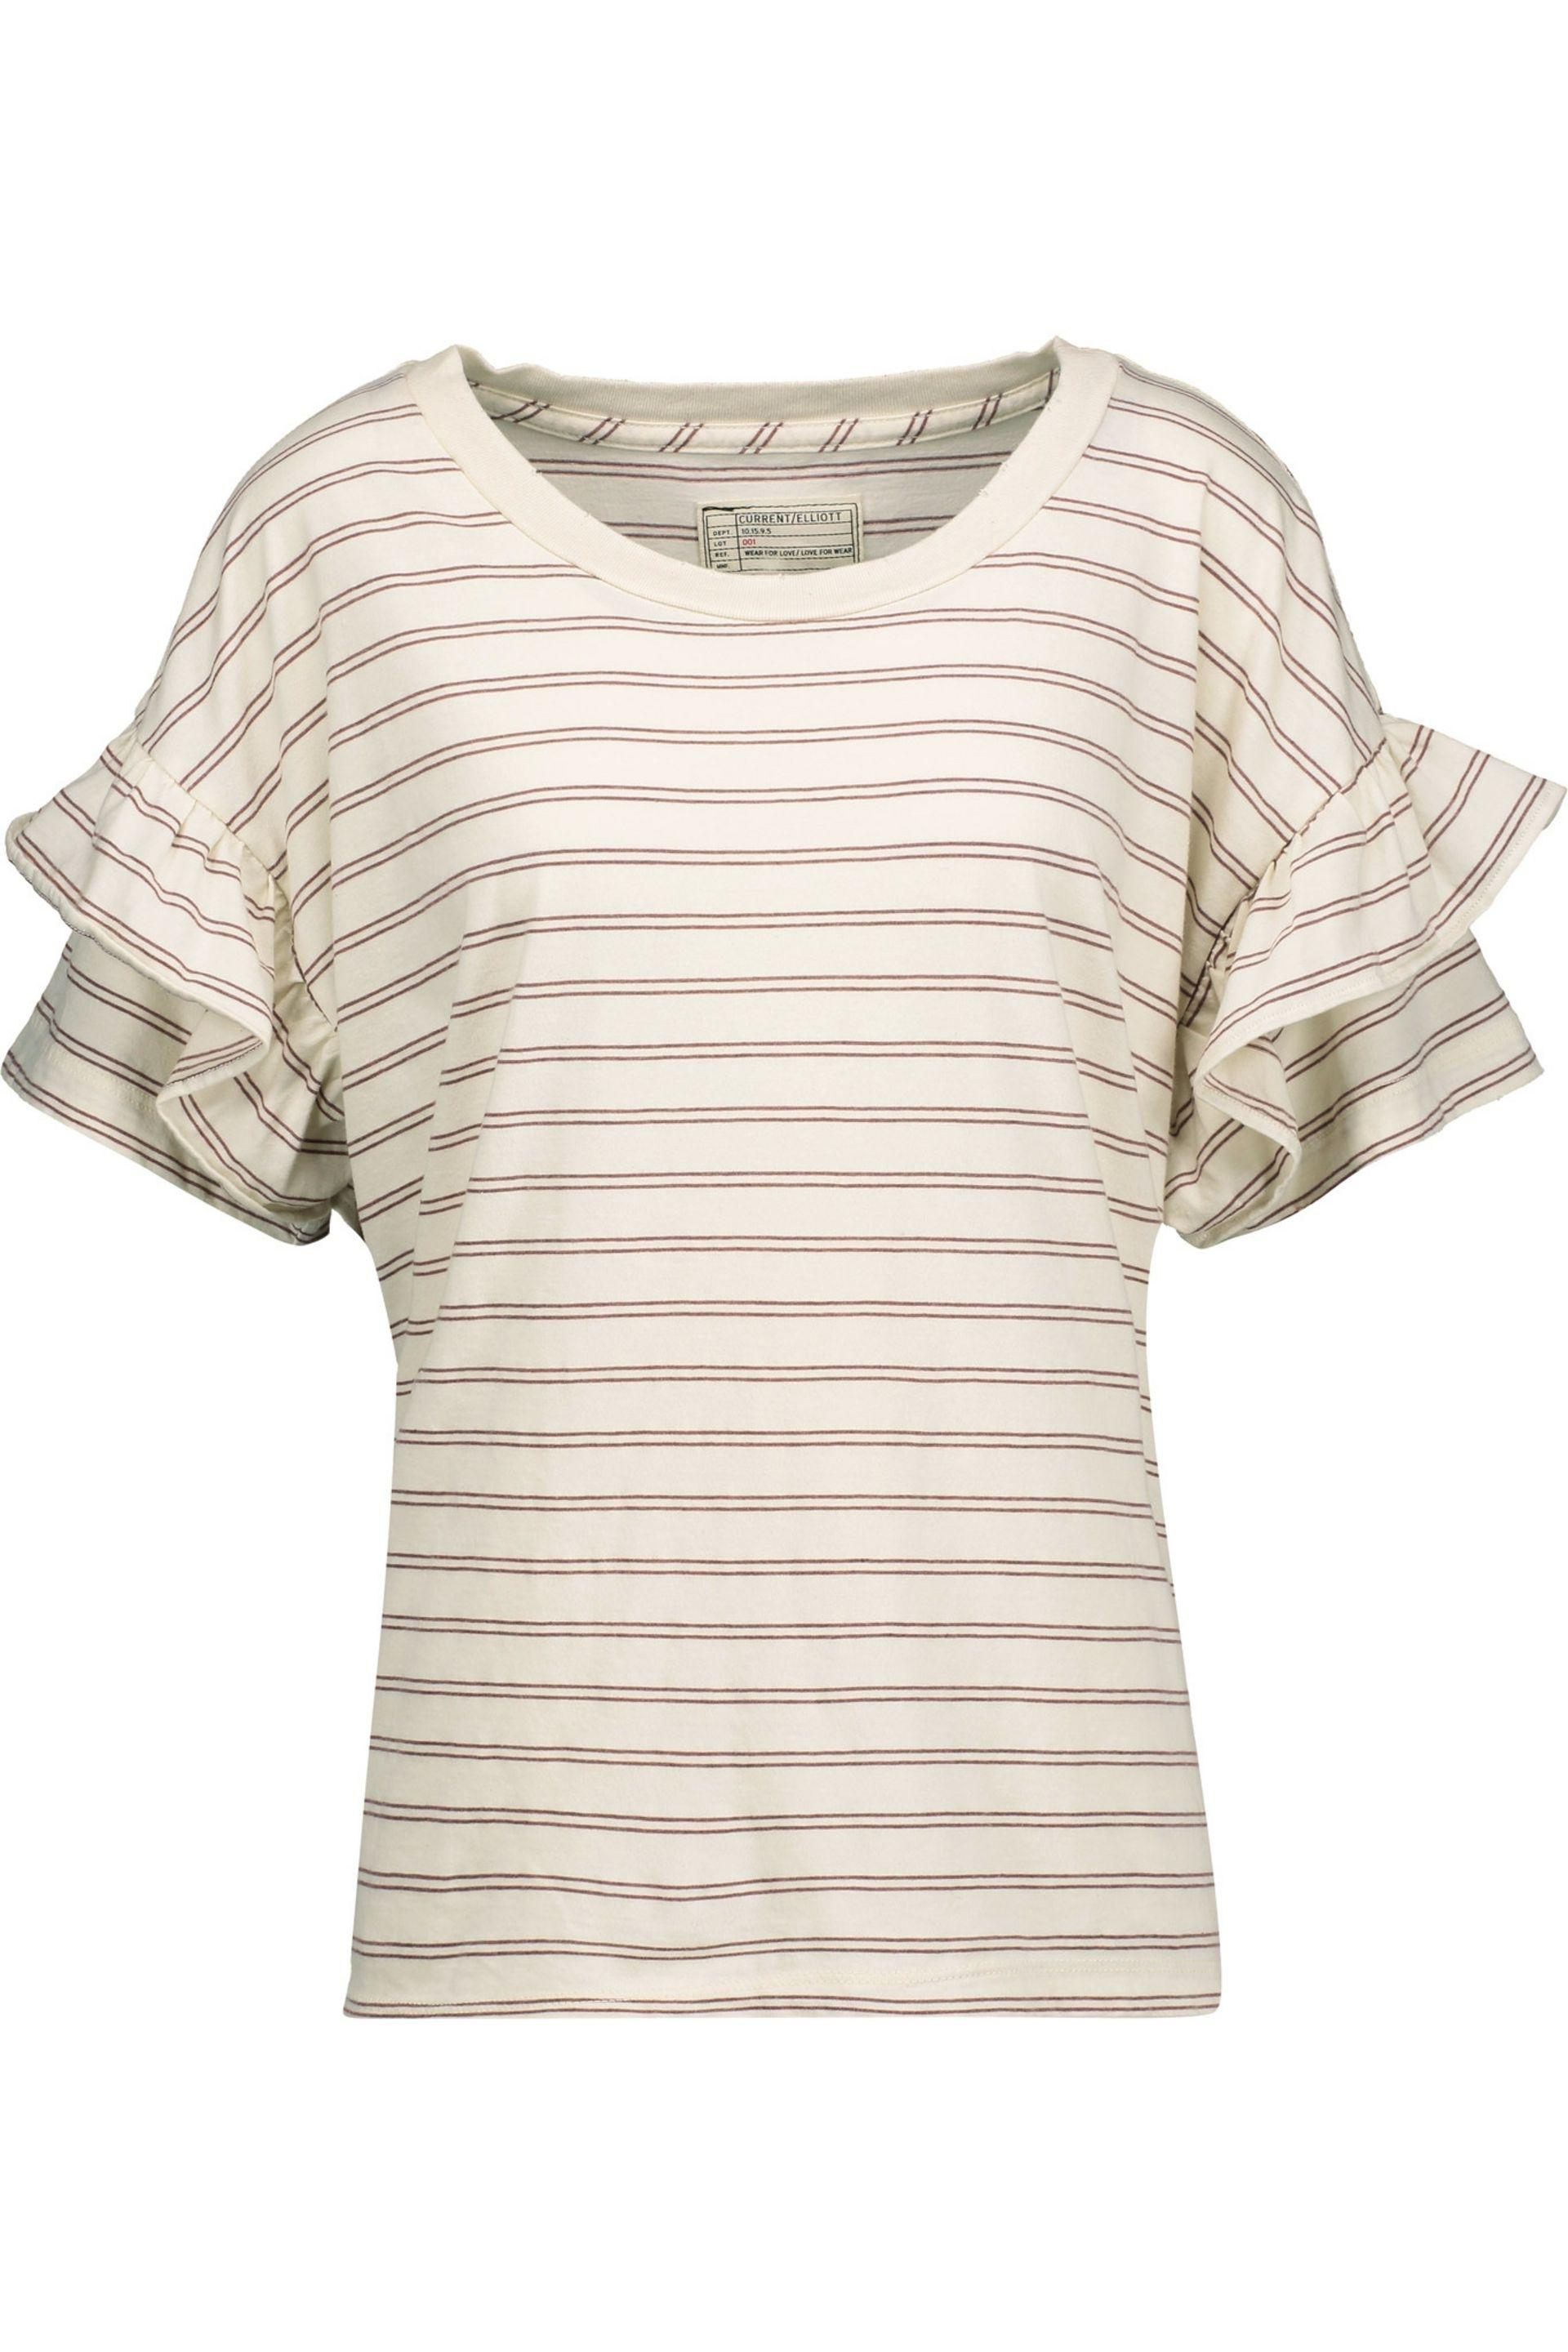 a95c665dd44 currentelliott--The-Ruffle-Roadie-Striped-Cotton-blend-Jersey-Top.jpeg